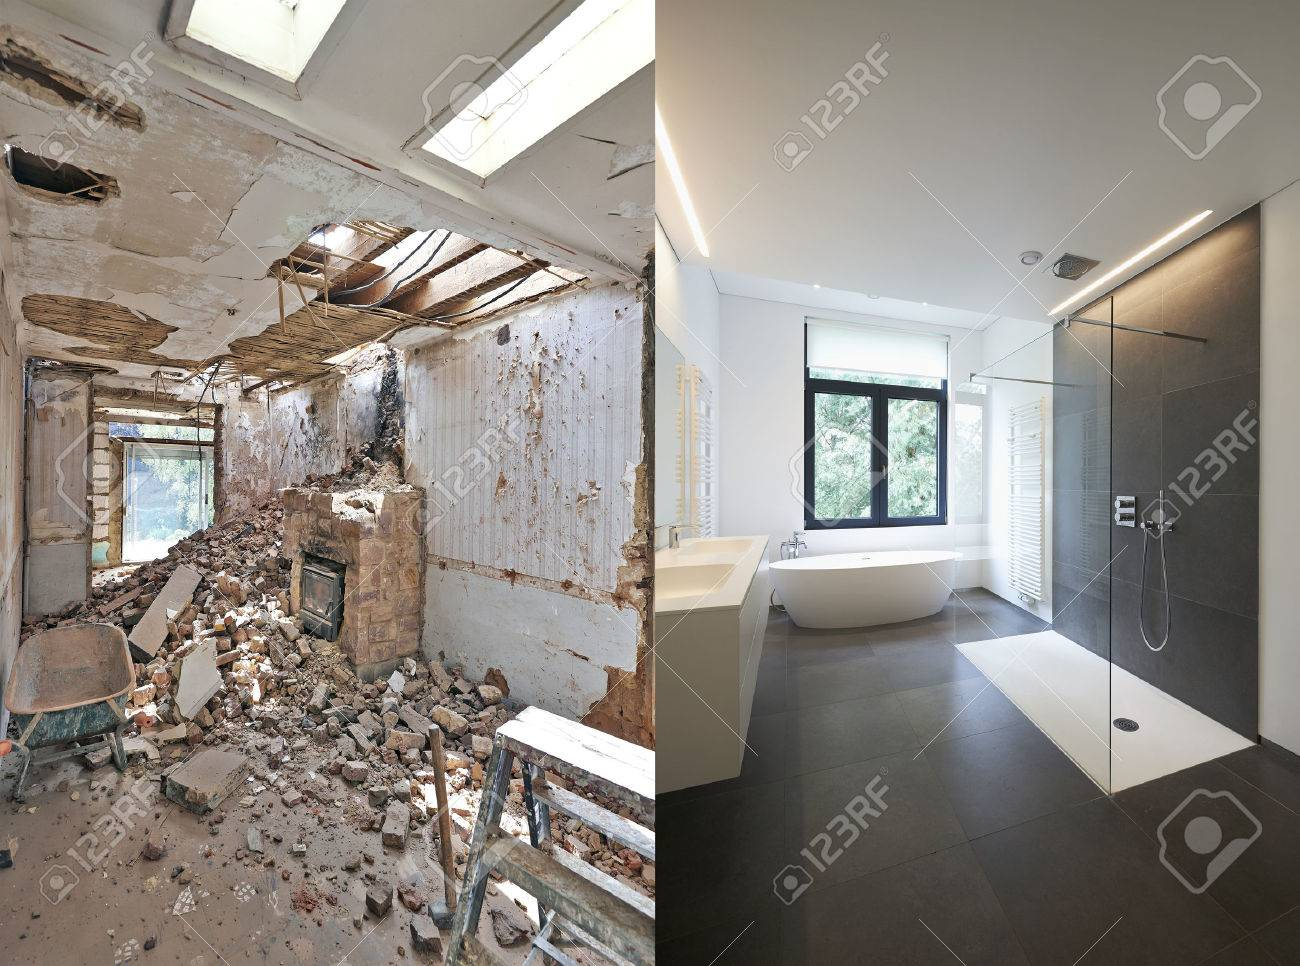 Renovation of a bathroom Before and after in horizontal format Standard-Bild - 51686294